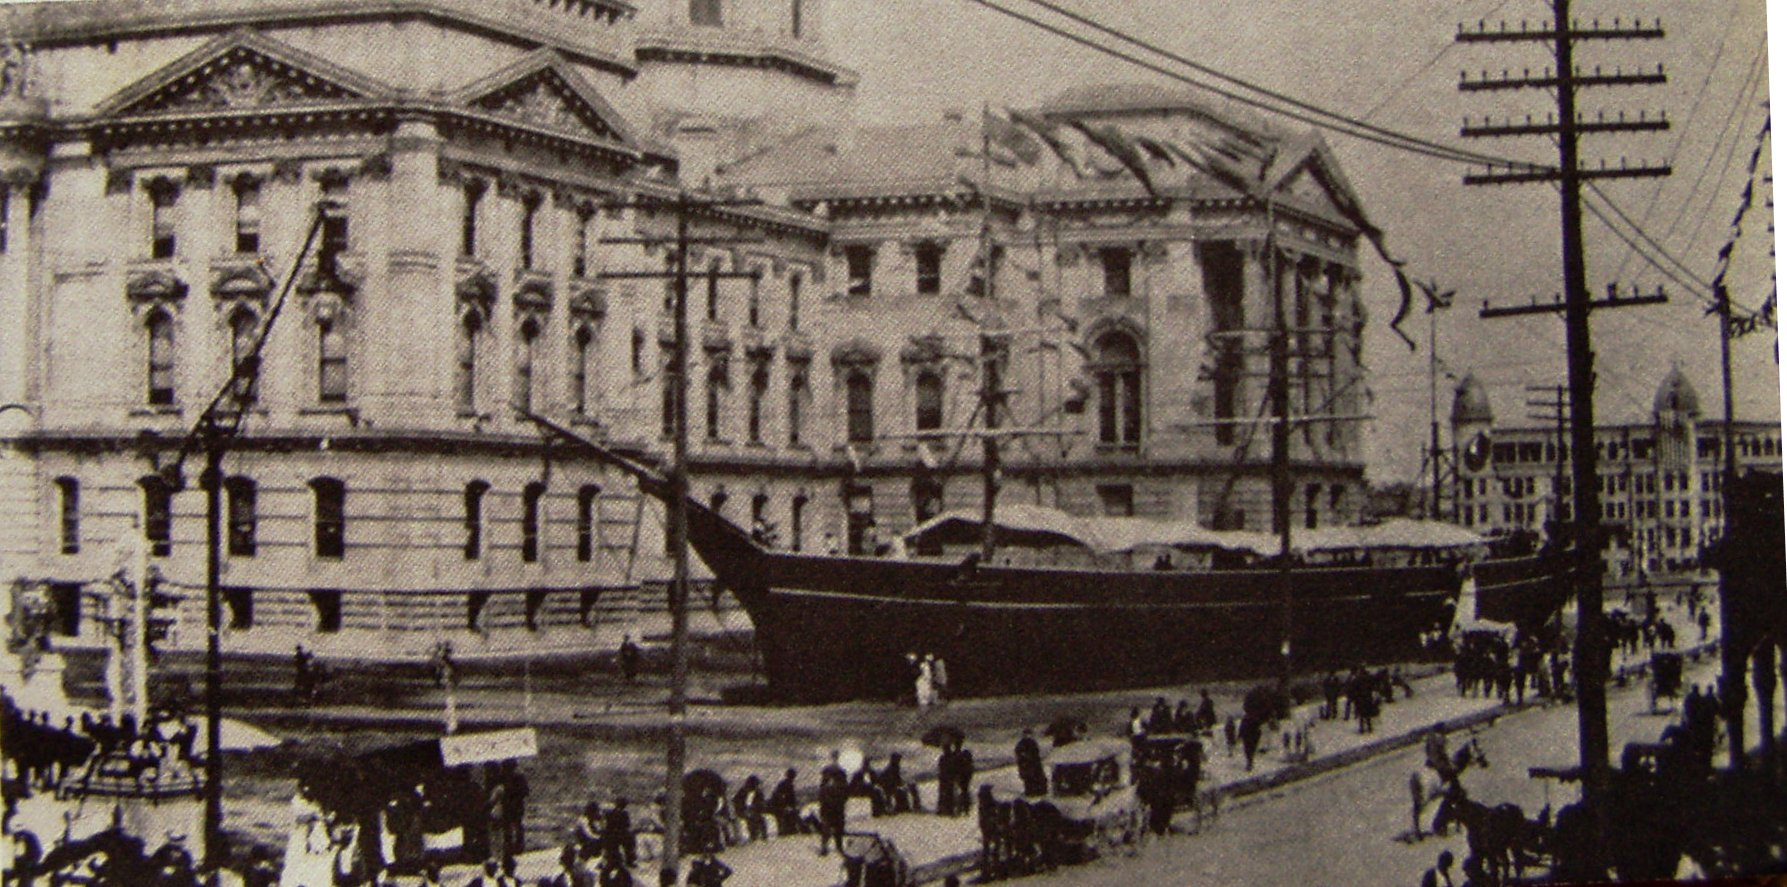 A replica of the USS Kearsarge displayed at the 1893 Grand Army of the Republic (G.A.R.) National Convention in Indianapolis, Indiana.